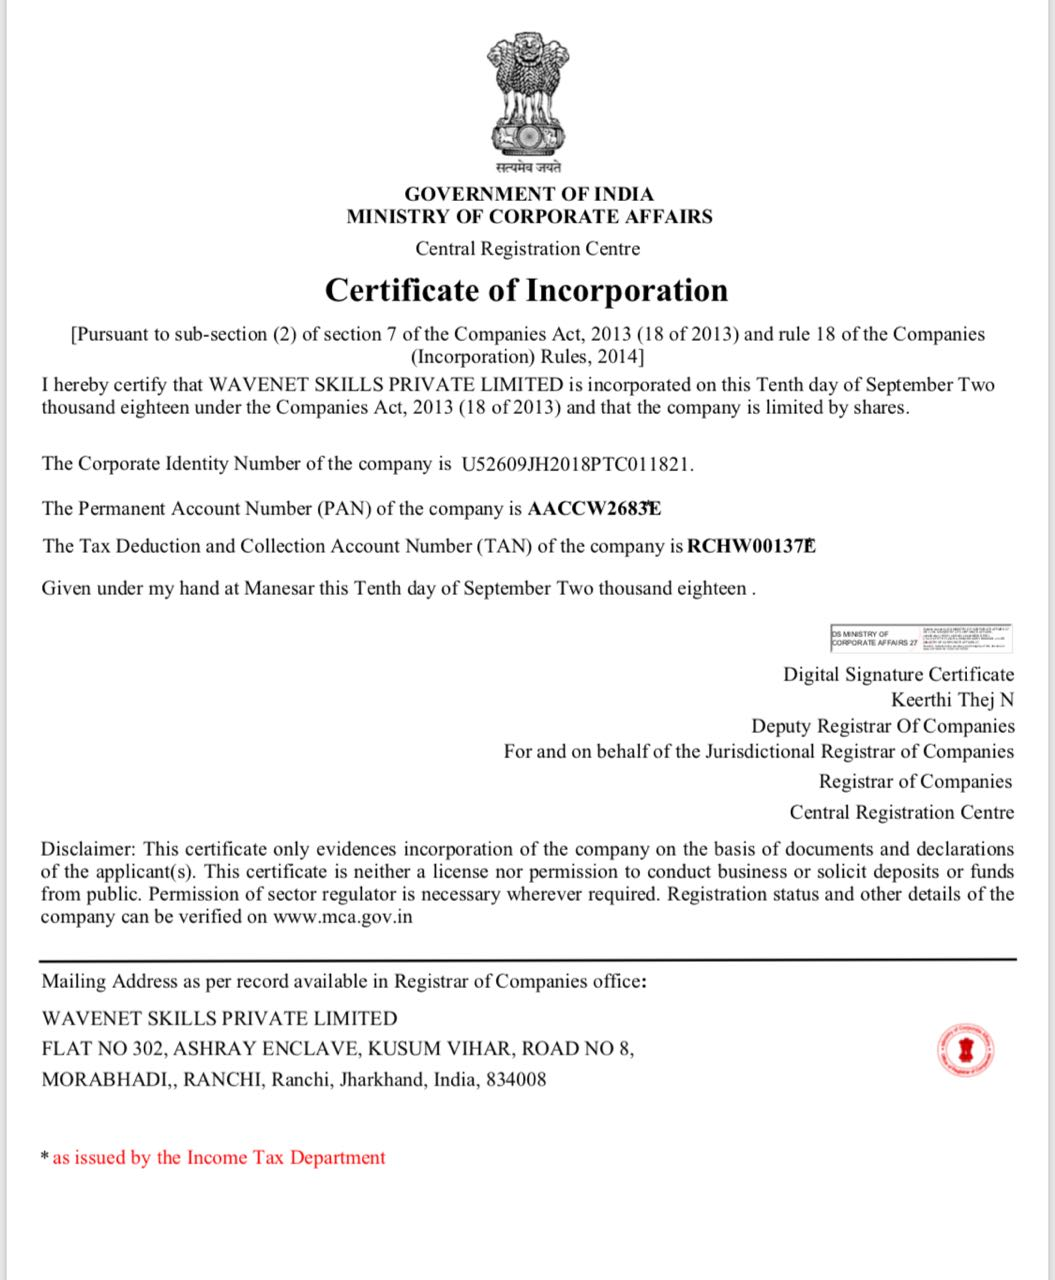 Incorporation certificate IMG